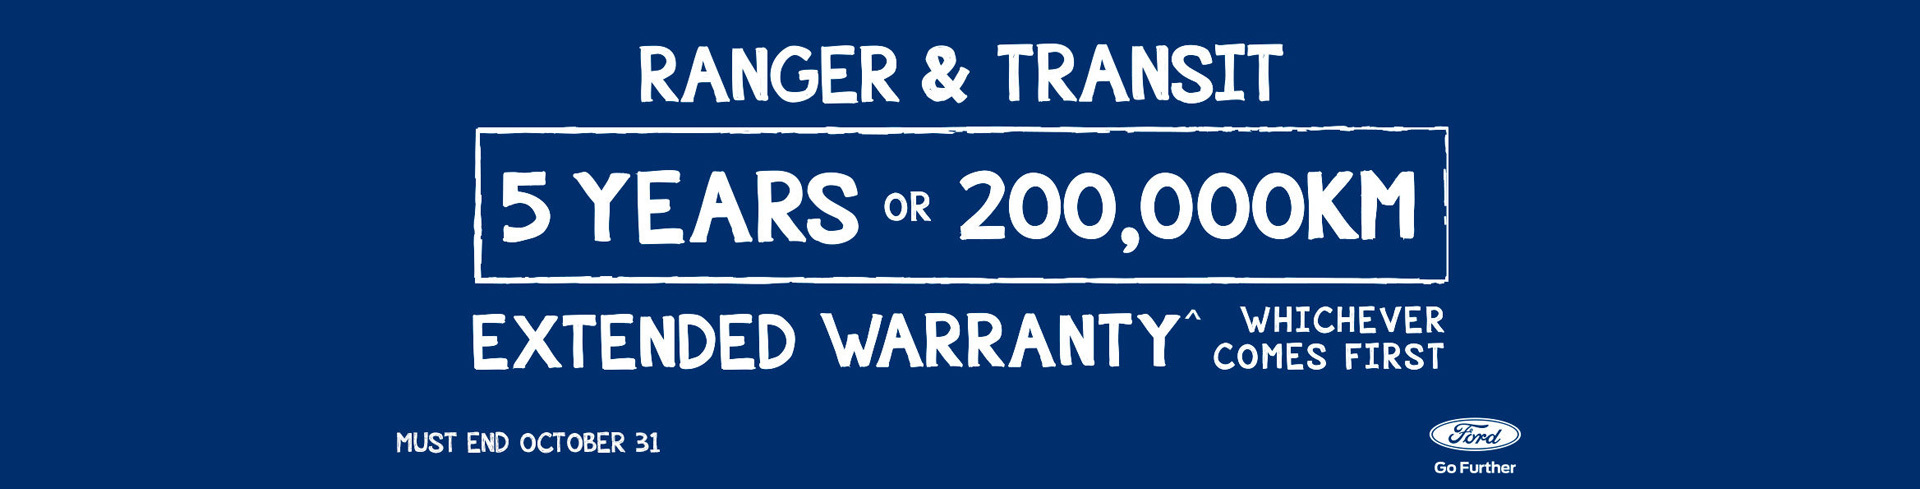 Ford - National Offer - 5 Years or 200,000km Extended Warranty